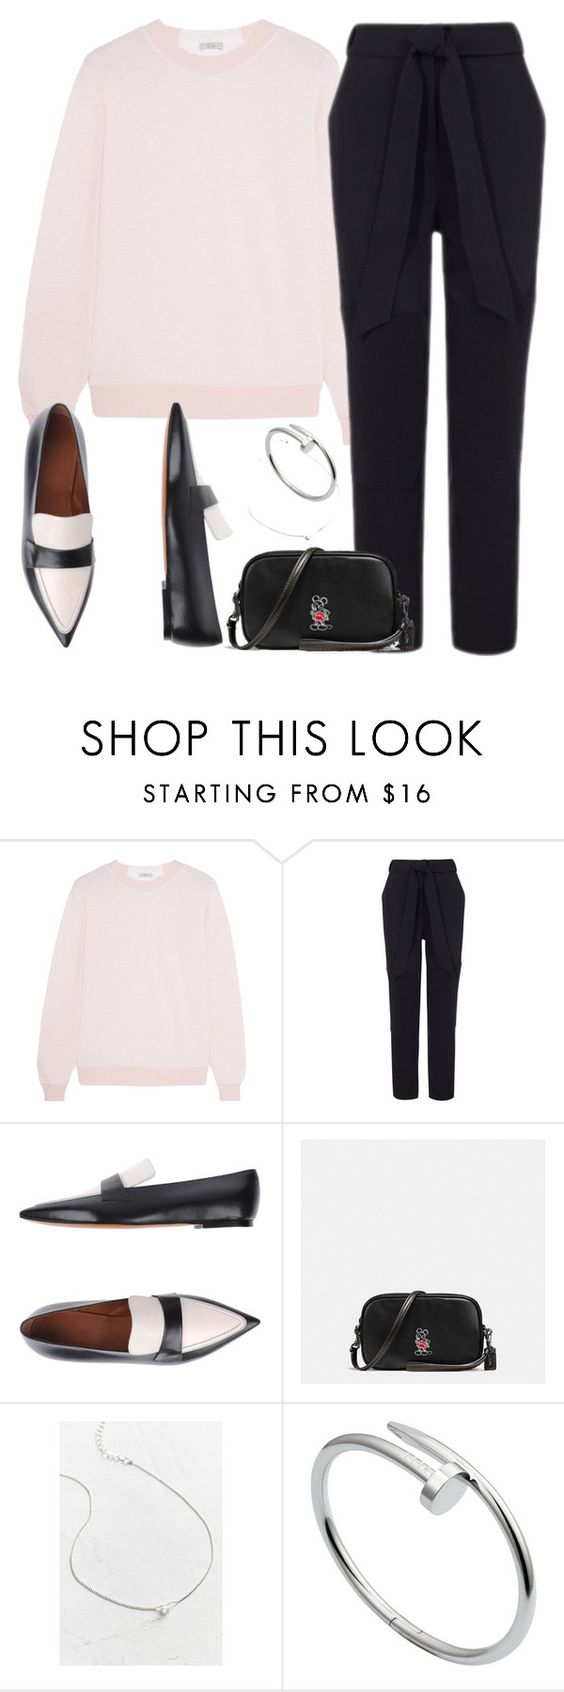 """""""Untitled #2511"""" by briarachele on Polyvore featuring Clu, CÉLINE, Coach, Urban Outfitters and Cartier"""